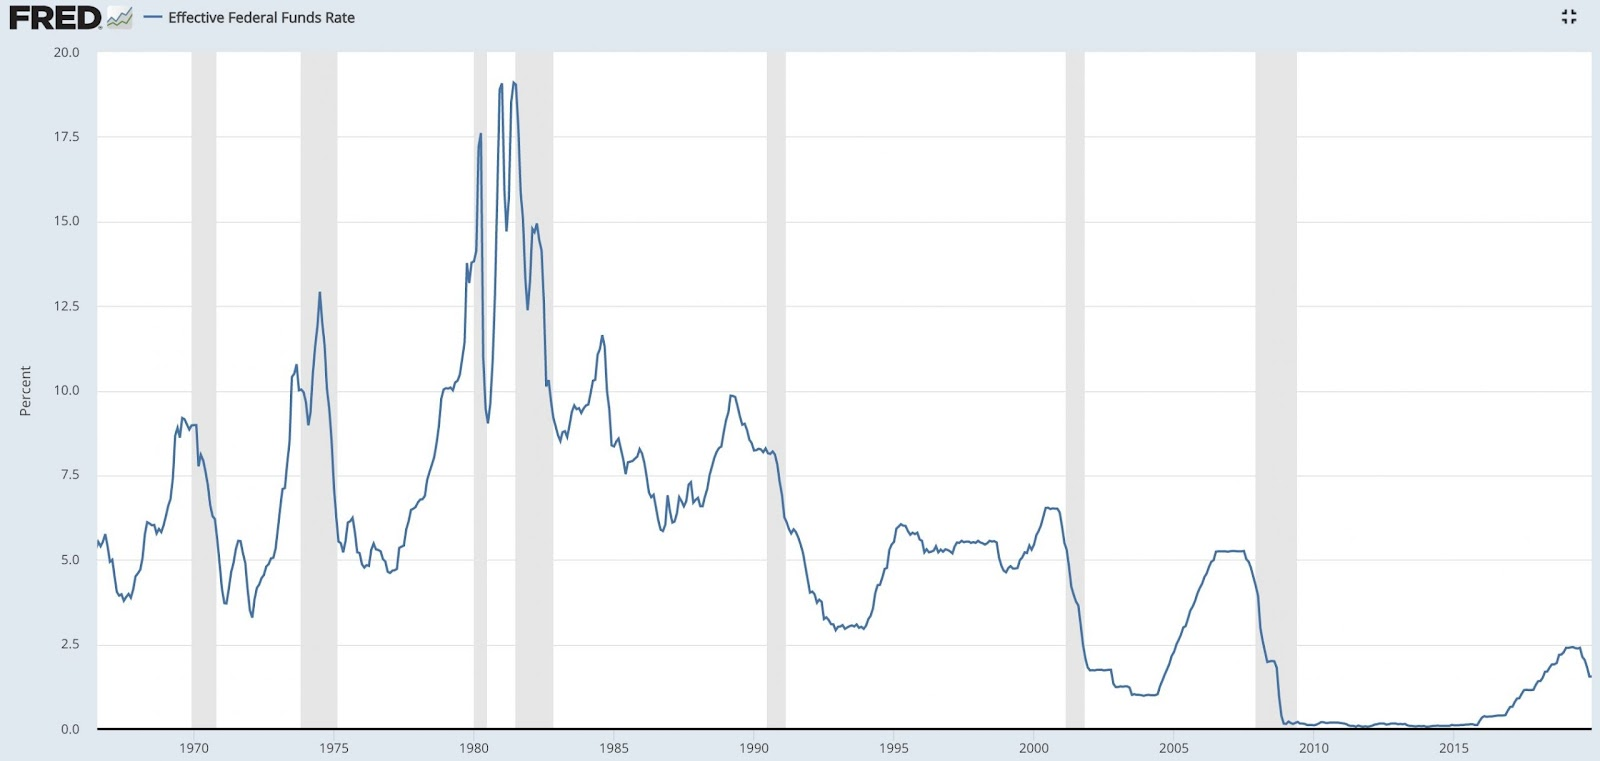 Fed rates over time